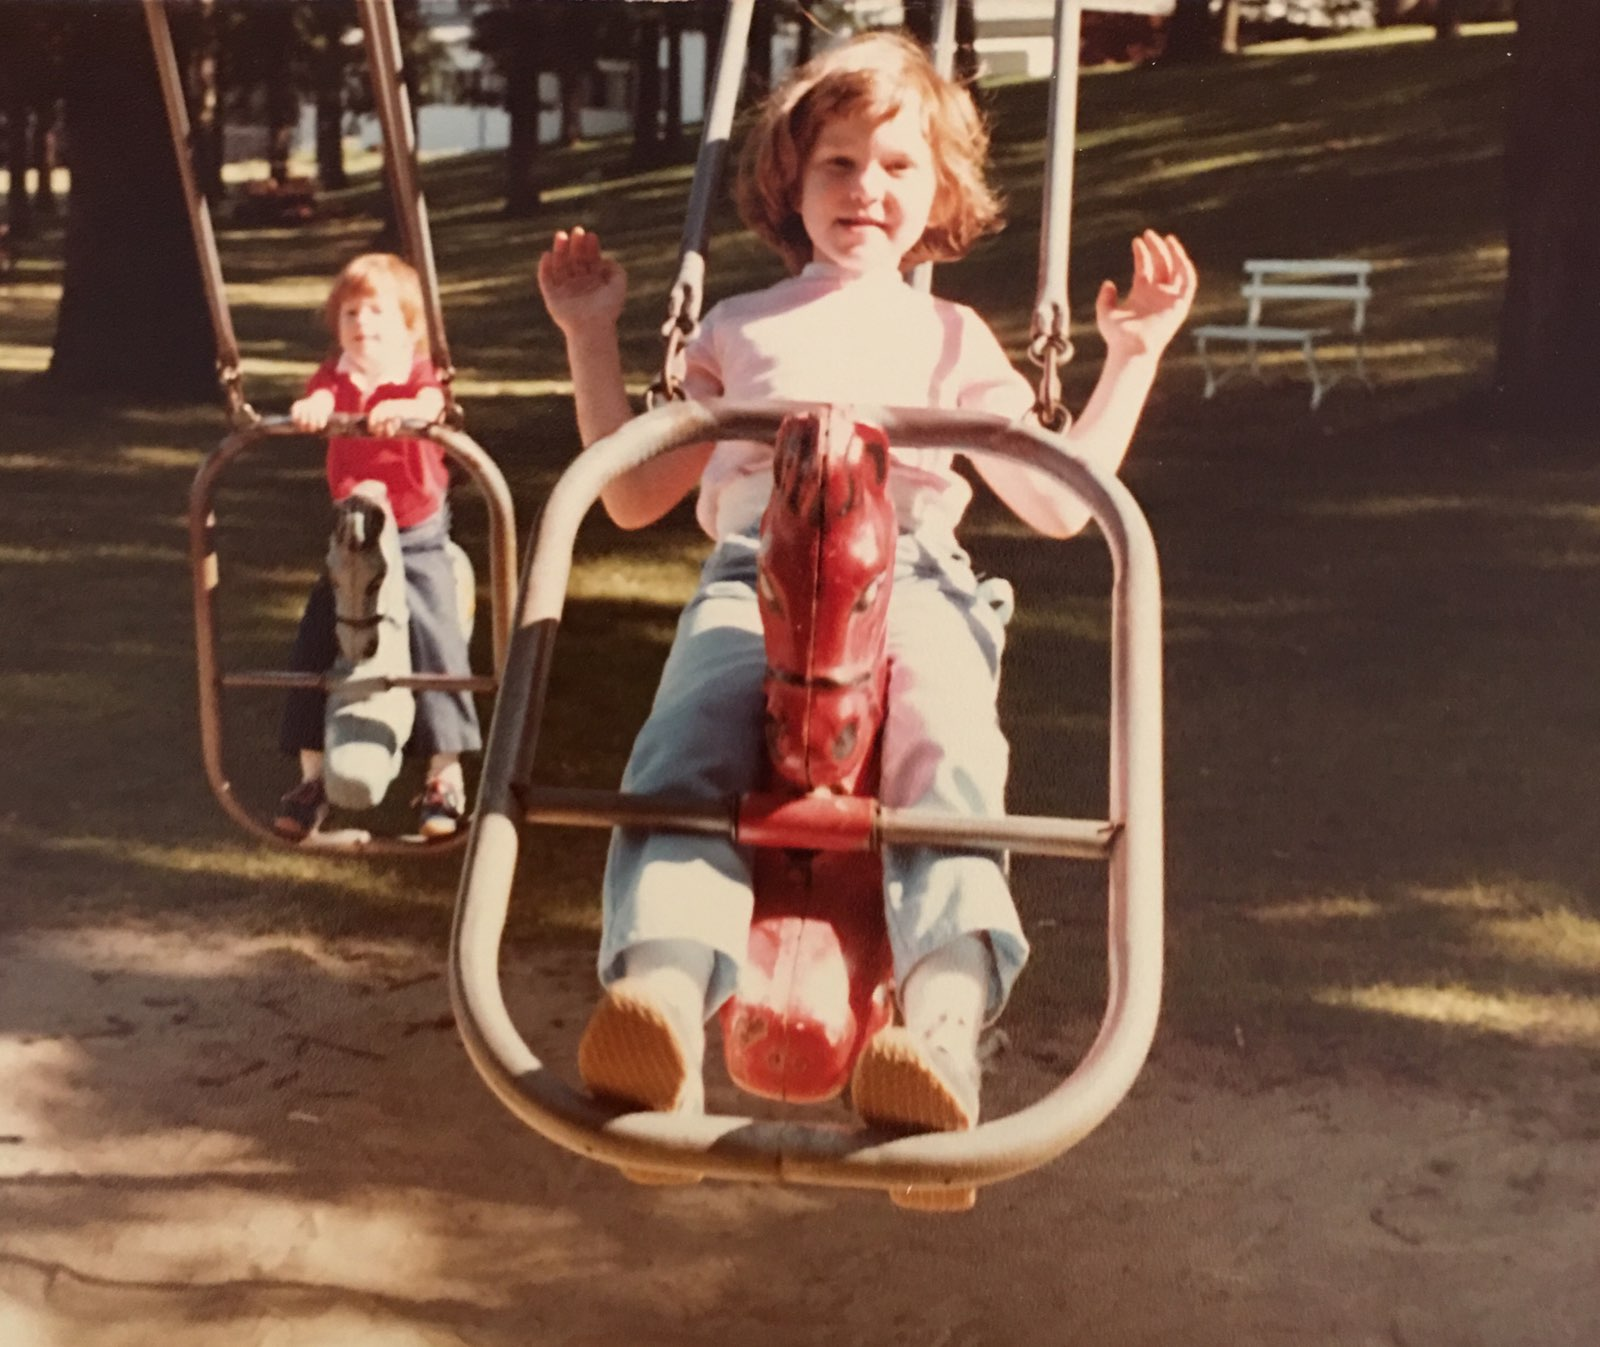 My sister and I on swings near the hotel.